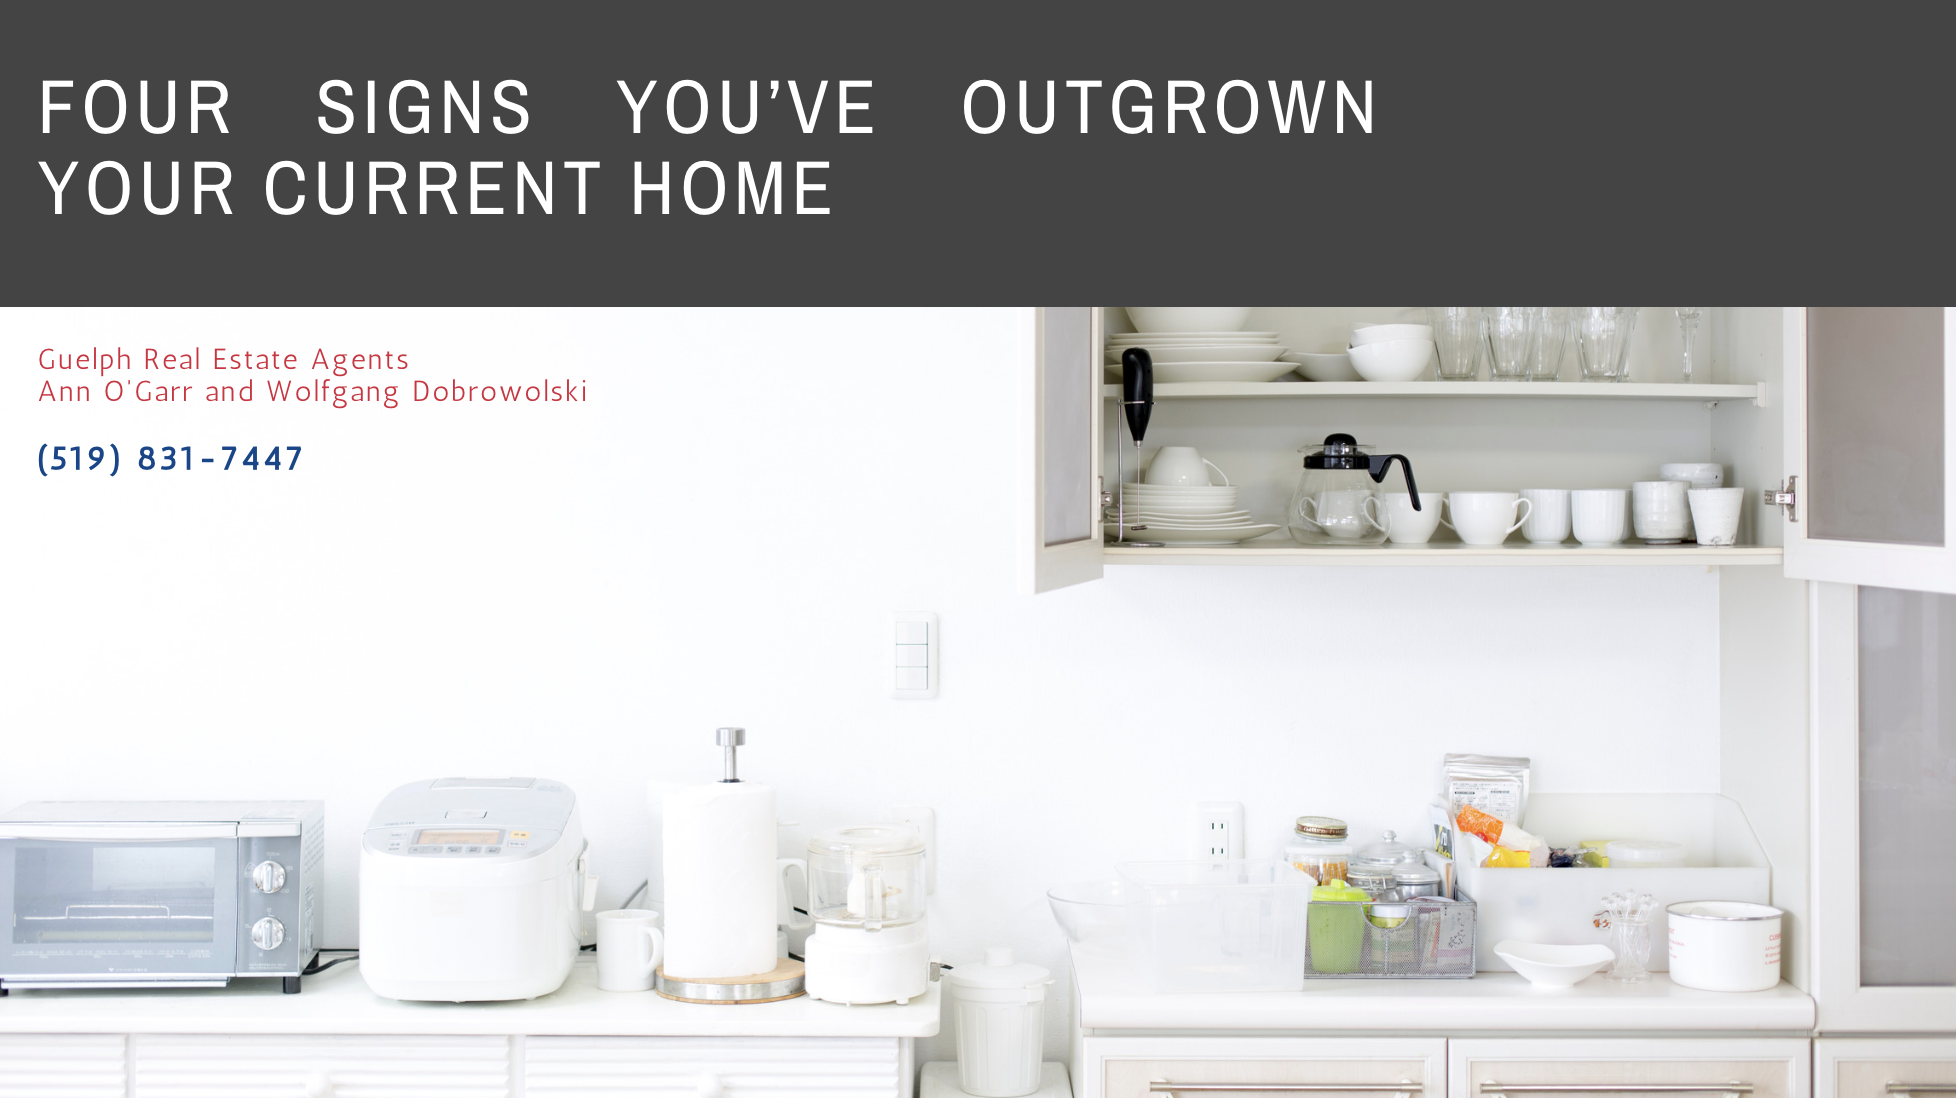 Guelph Real Estate - Have You Outgrown Your Home?